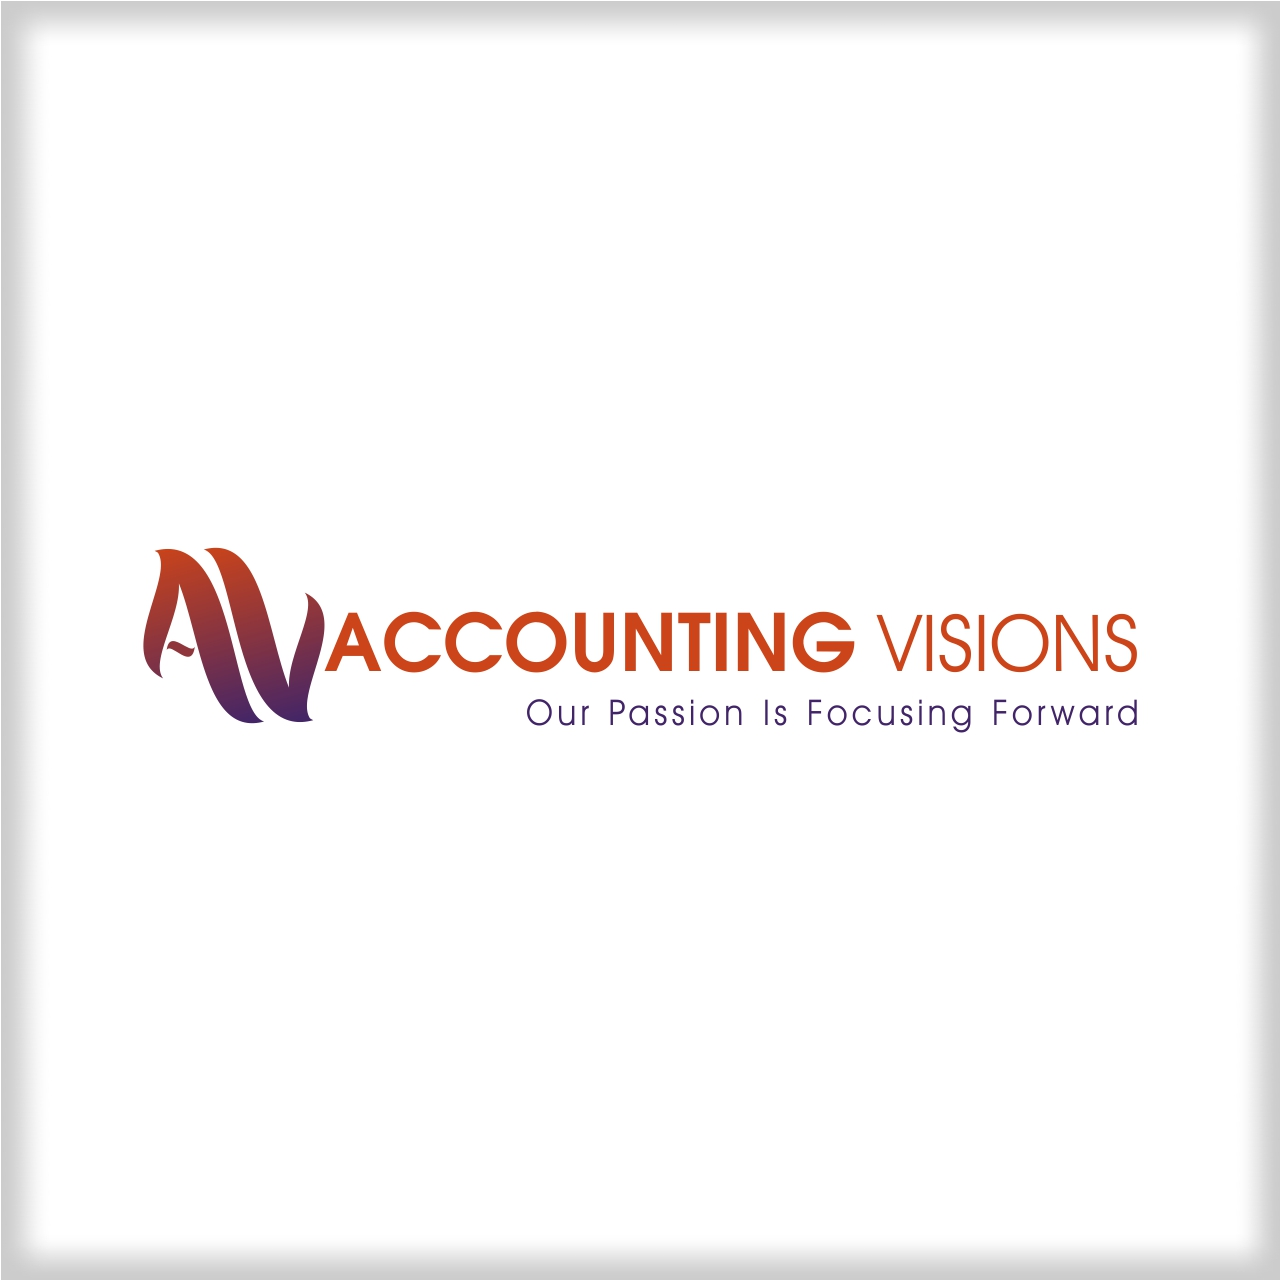 Logo Design by martinz - Entry No. 5 in the Logo Design Contest Accounting Visions.